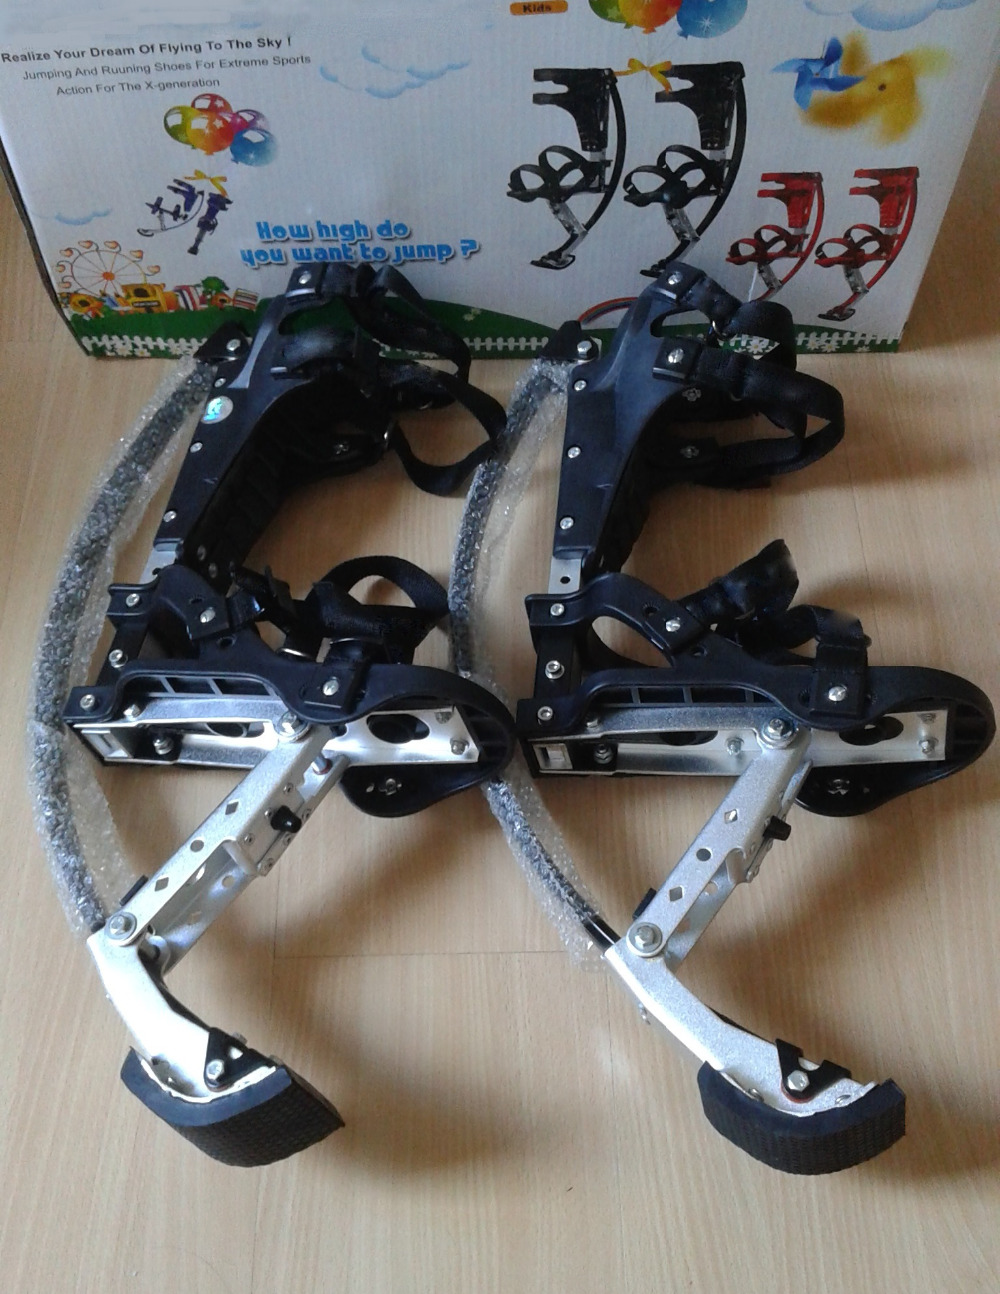 Skyrunner For People Weight 44lbs~88lbs/20kg~40kg black Jumping Stilts/skyrunner/Jump shoes/Flying Shoes Skyrunner For People Weight 44lbs~88lbs/20kg~40kg black Jumping Stilts/skyrunner/Jump shoes/Flying Shoes